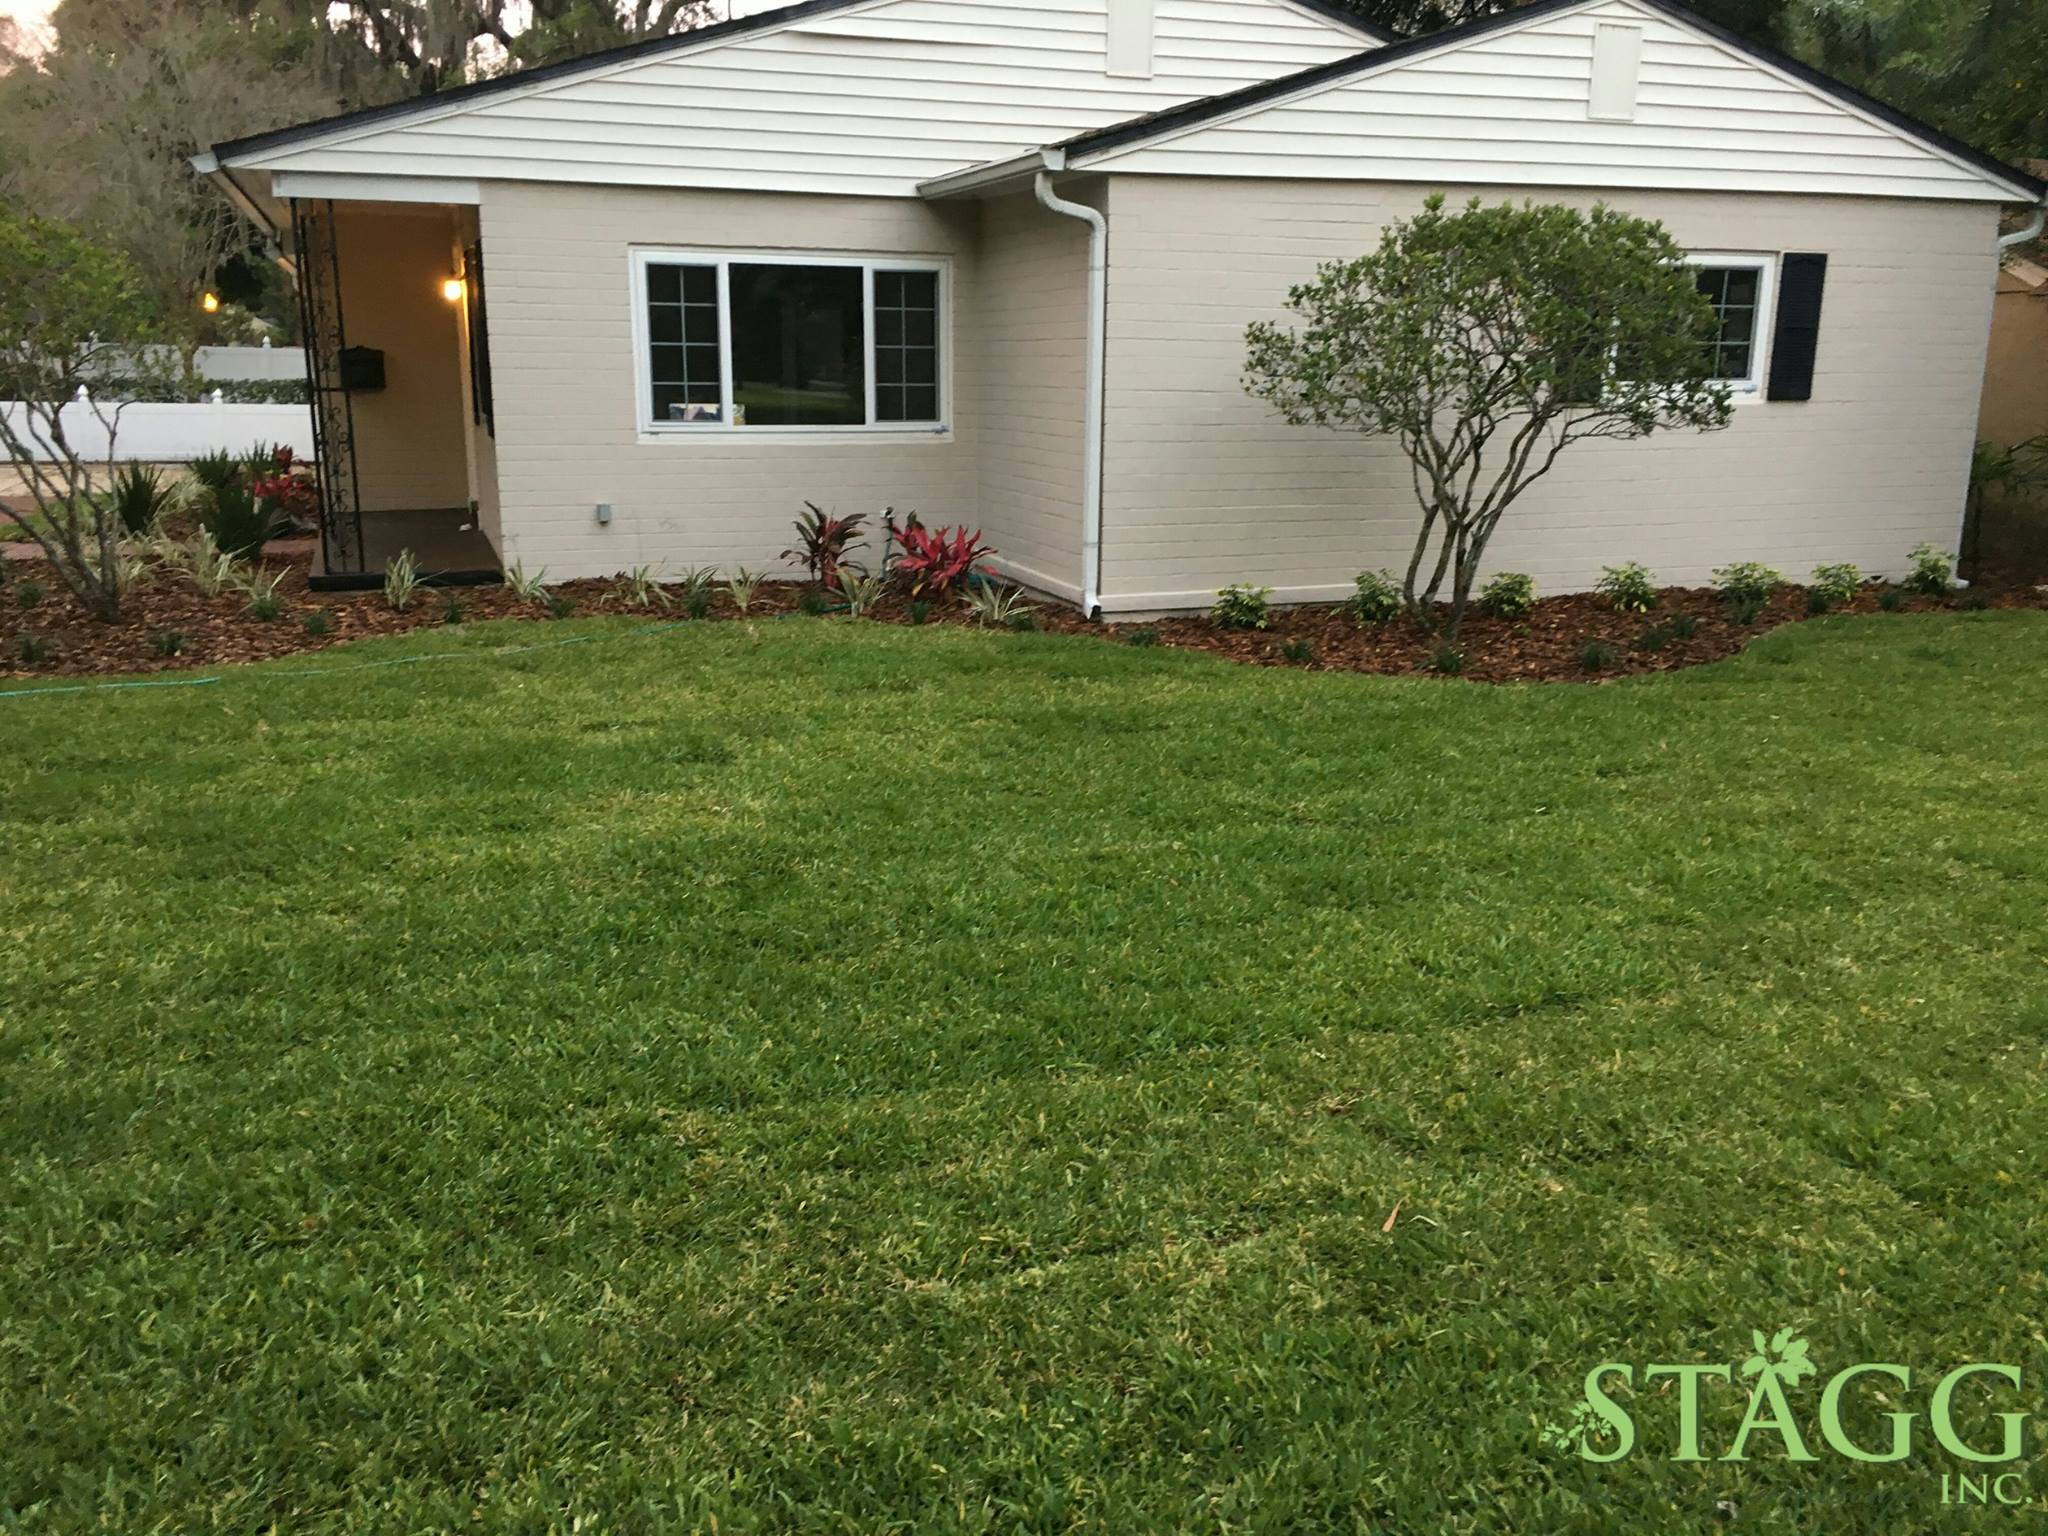 stagg lawn franchise